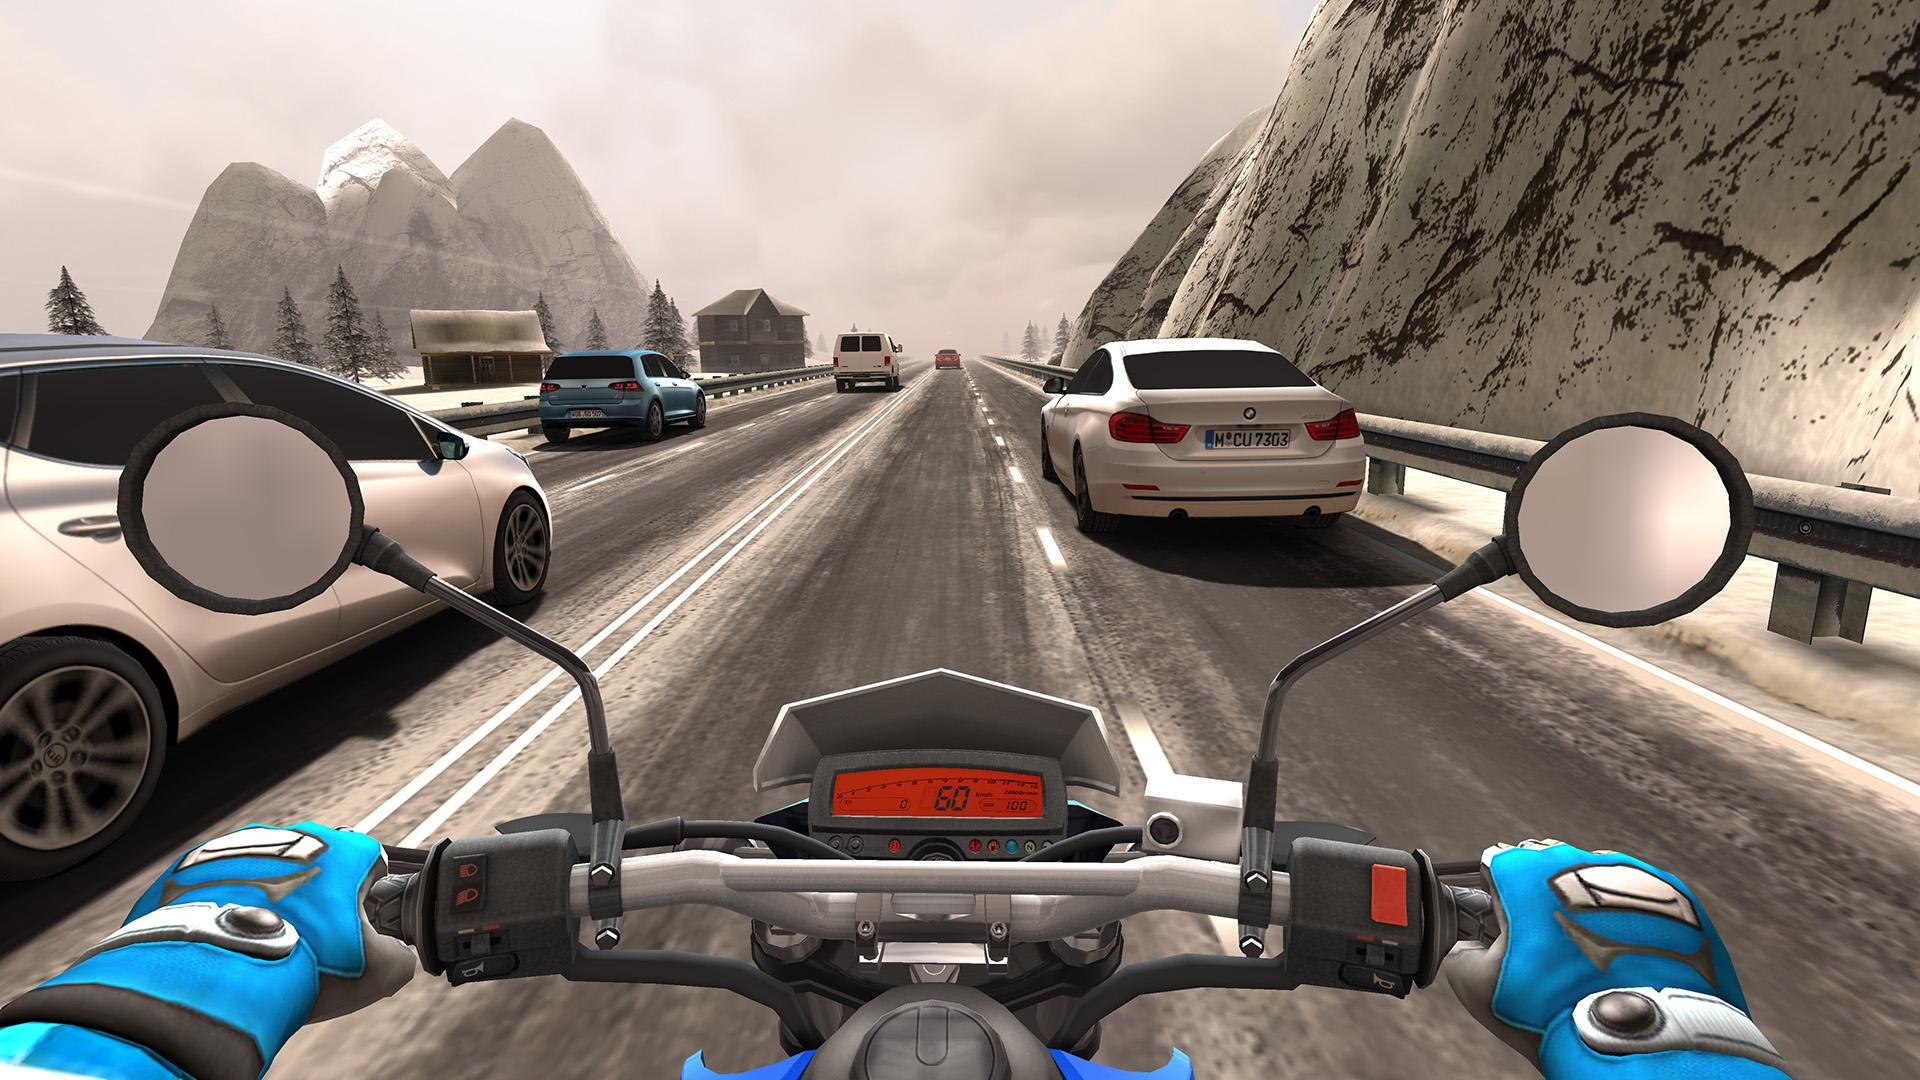 Traffic Rider Mod Apk (Unlimited Money/Key) 2